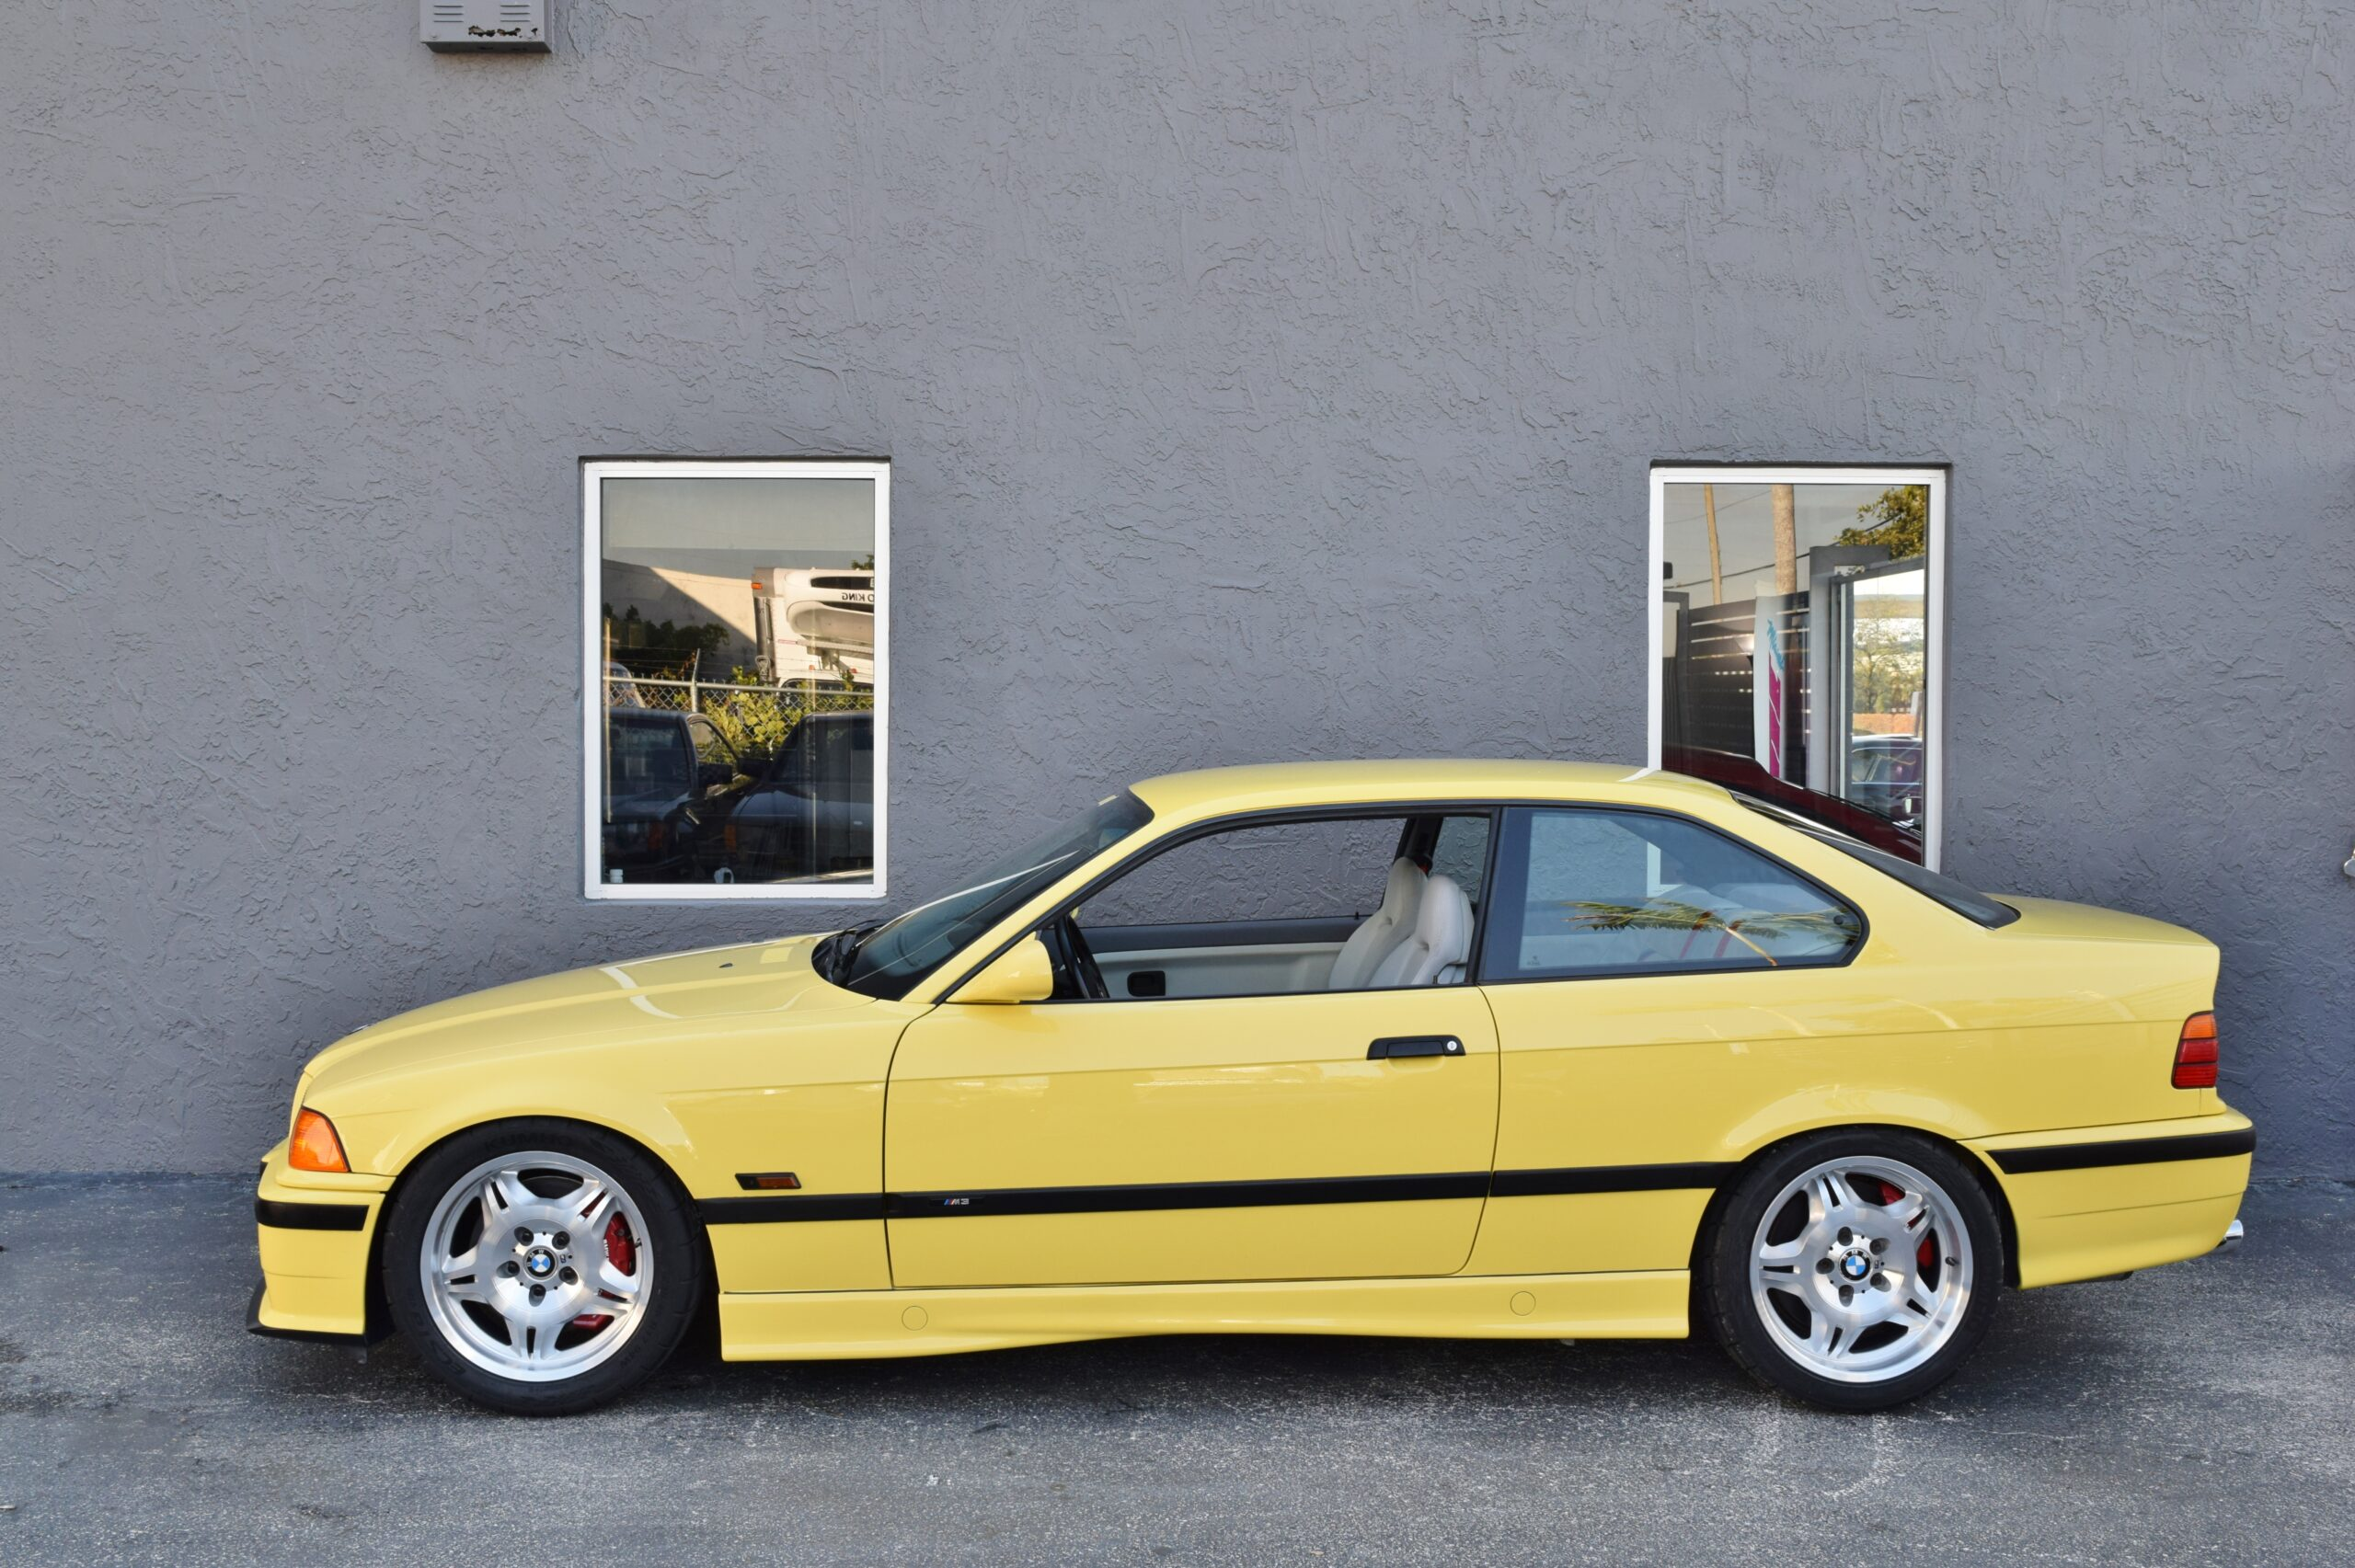 1994 BMW M3 Euro E36 Powerful S50B30 Motor- euro spec M3 – Slick top – only 42.000 miles